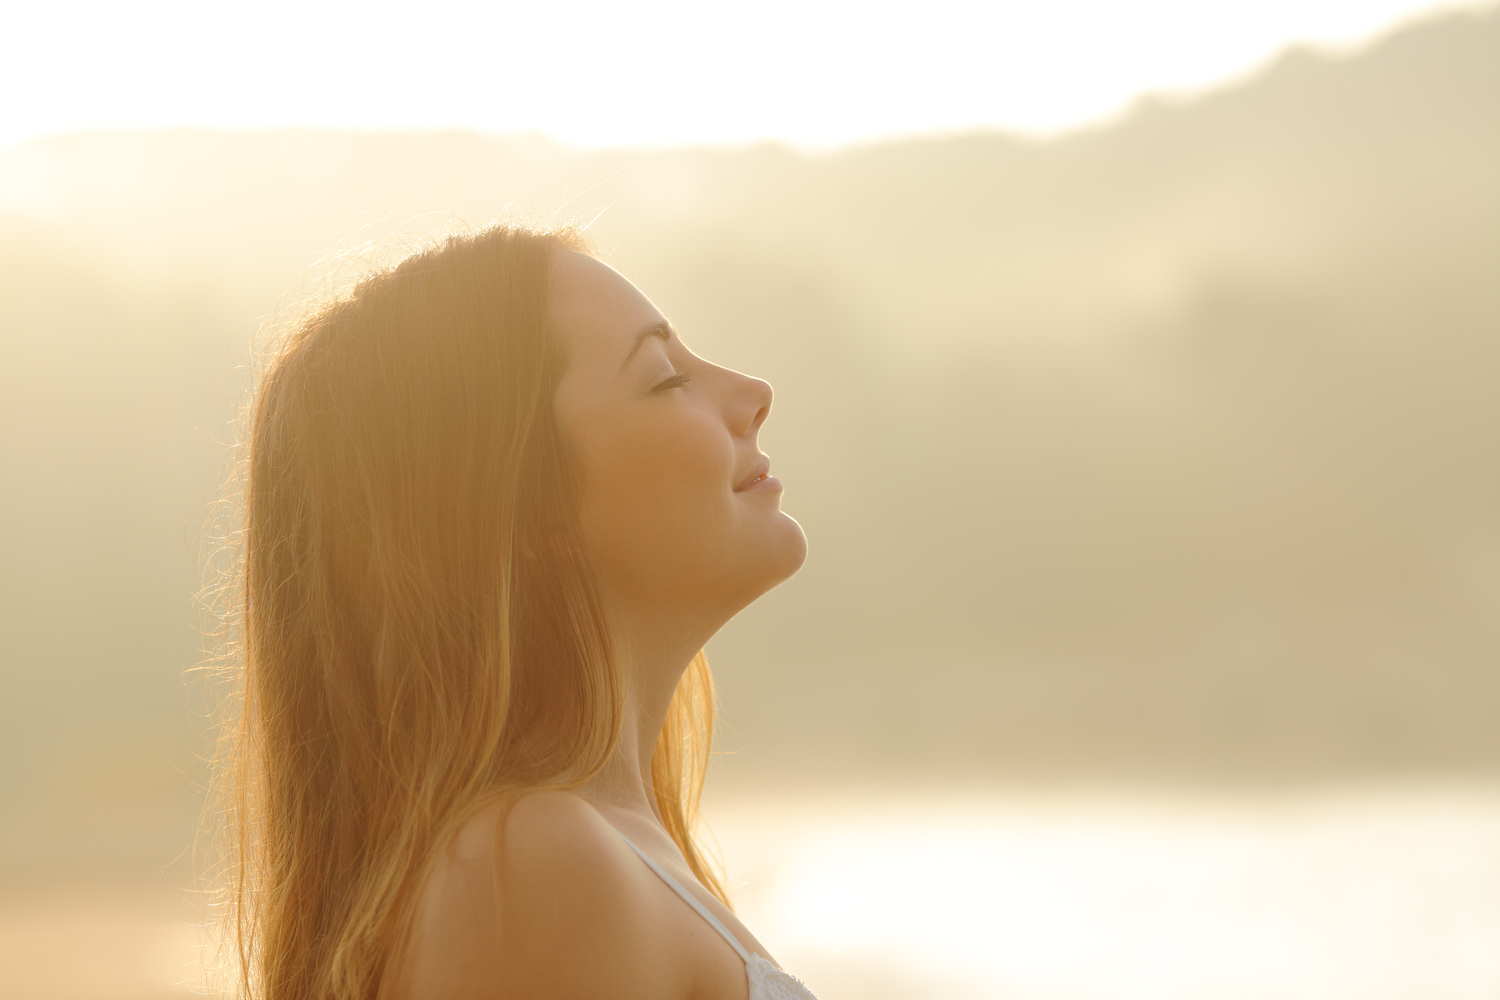 Slow down breathing to reduce stress and anxiety